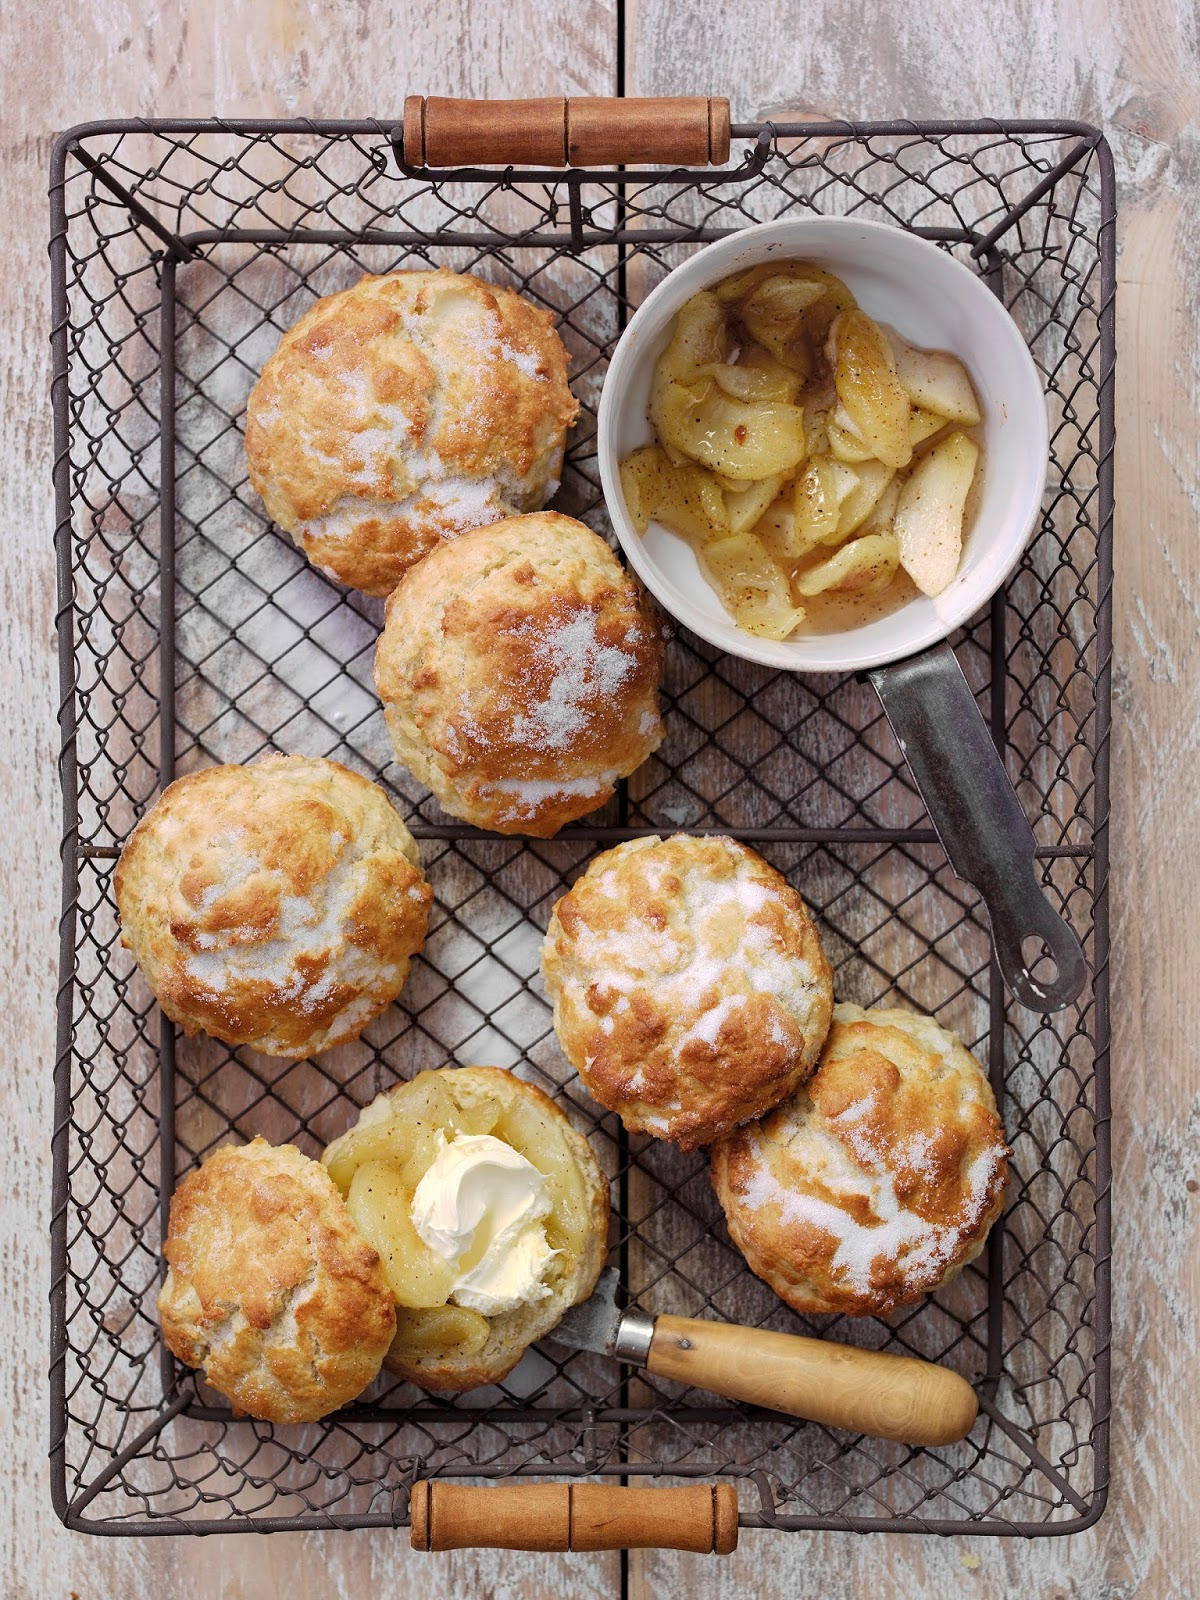 How To Make Granny Smith's Famous Apple Scones